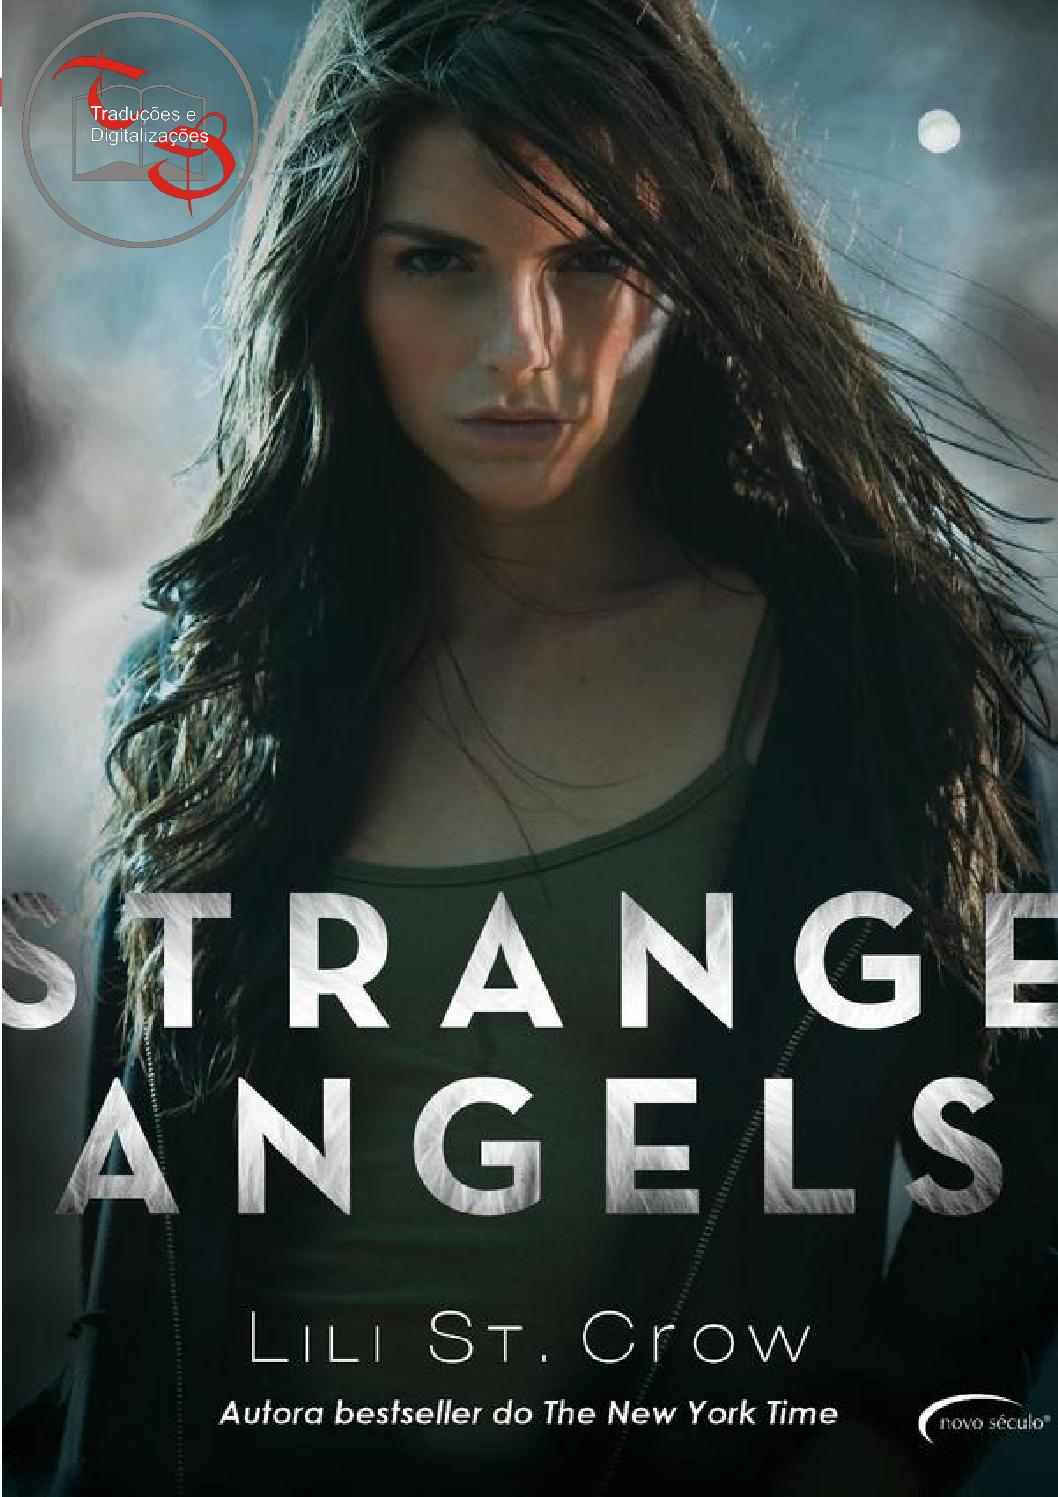 Strange angel s vol 1 by Camila Brito - issuu 84effd1a266